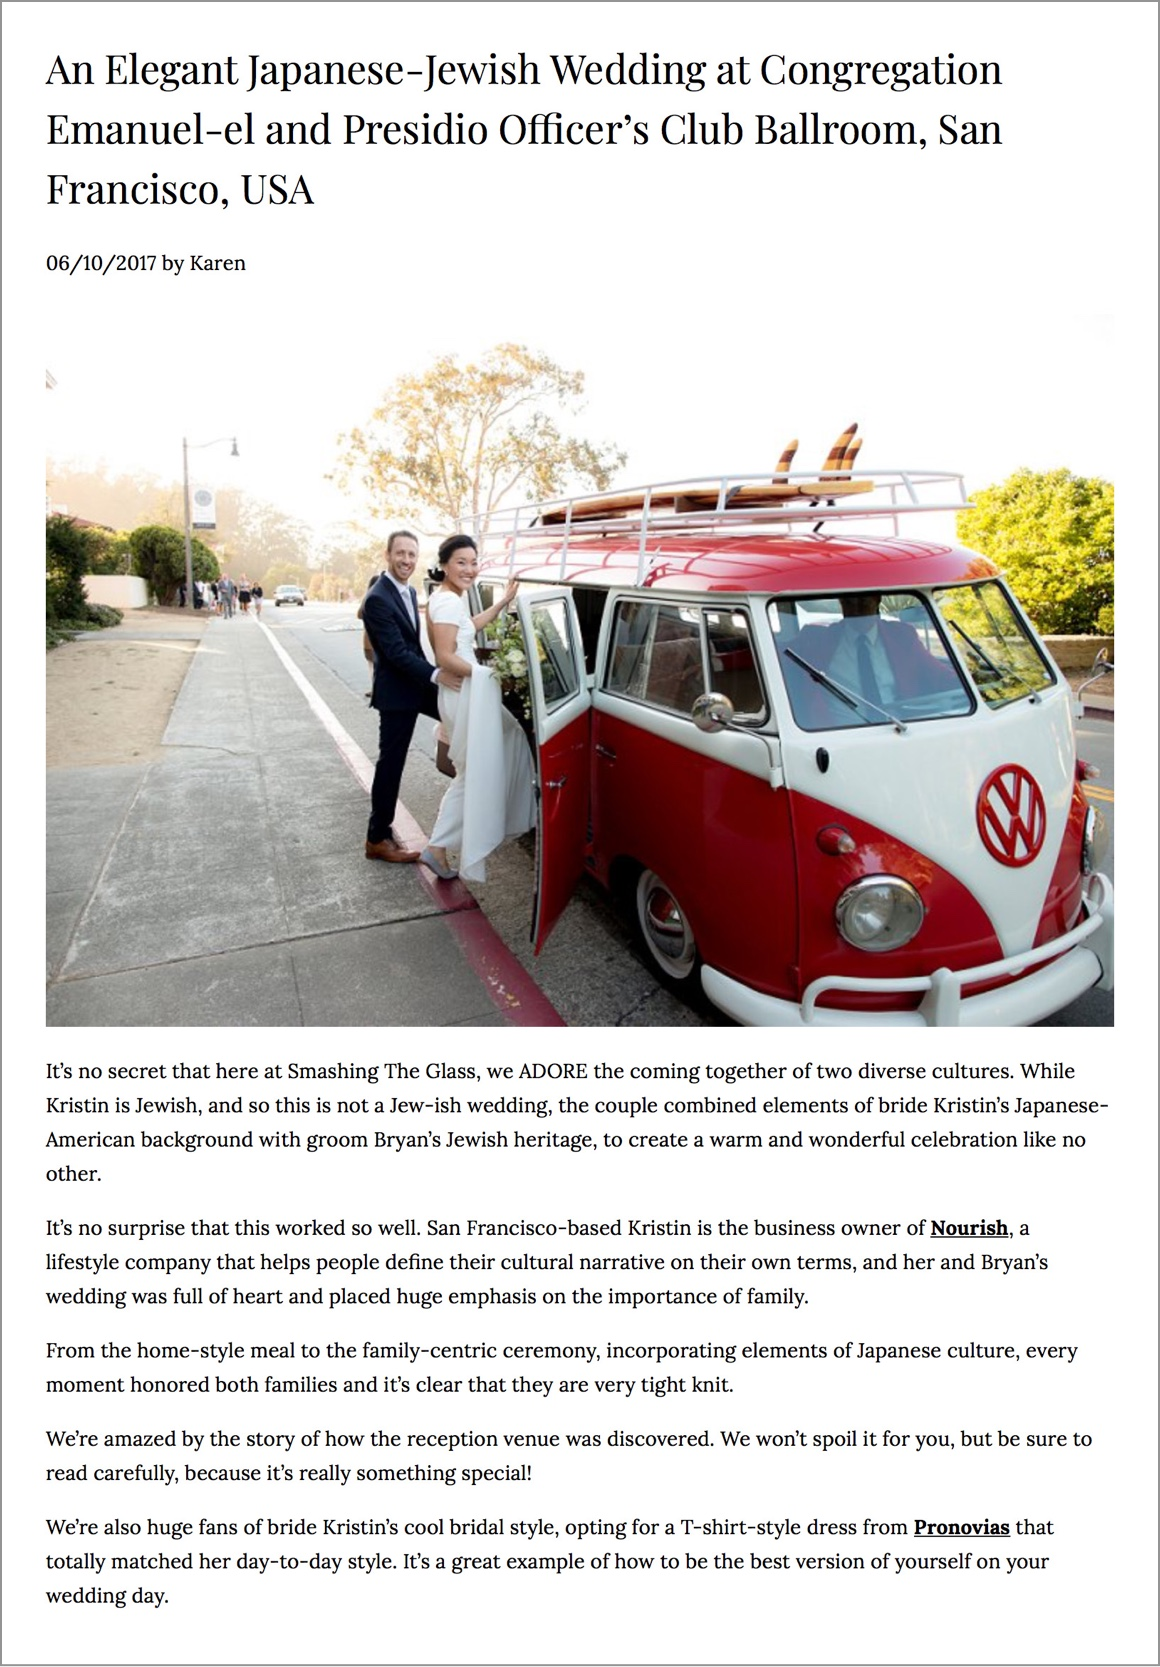 """""""While Kristin is Jewish, and so this is not a Jew-ish wedding, the couple combined elements of bride Kristin's Japanese-American background with groom Bryan's Jewish heritage, to create a warm and wonderful celebration like no other."""